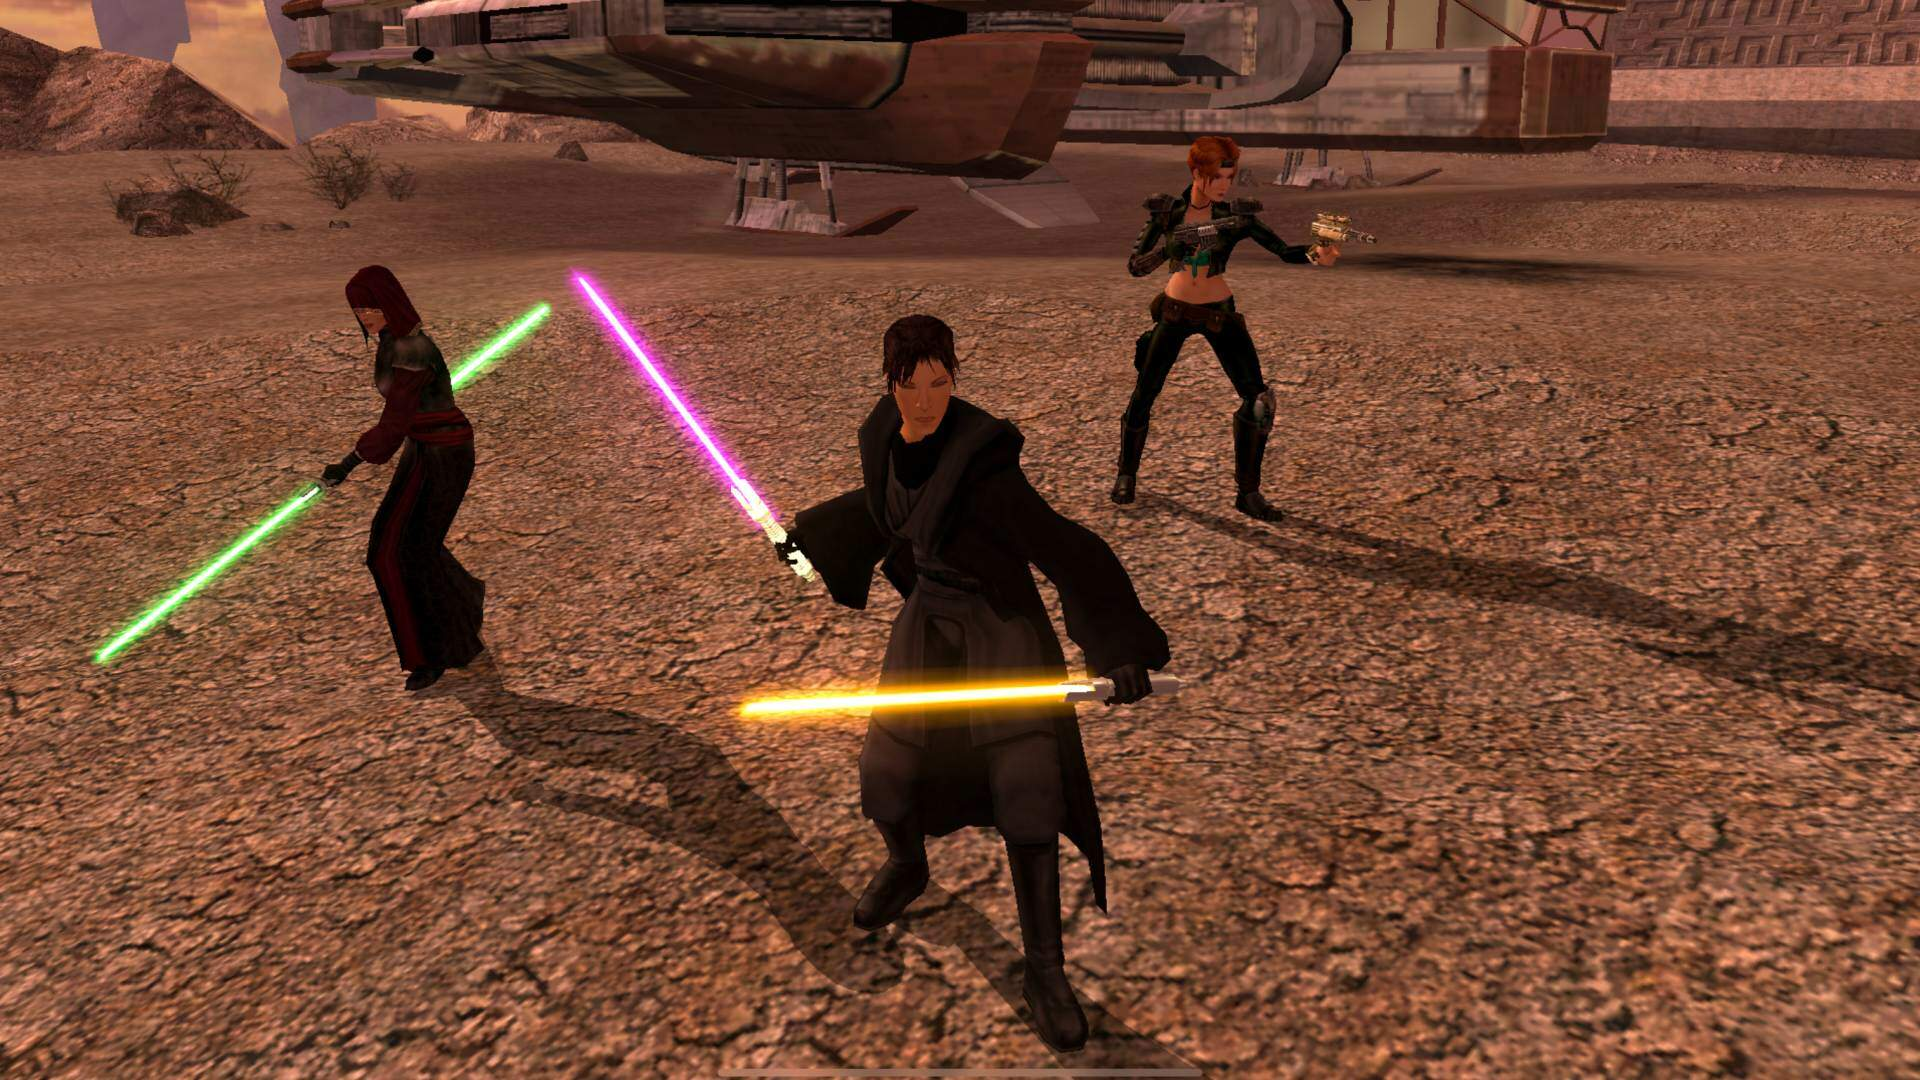 Star Wars: Knights of the Old Republic 2 Hits Mobile Next Week